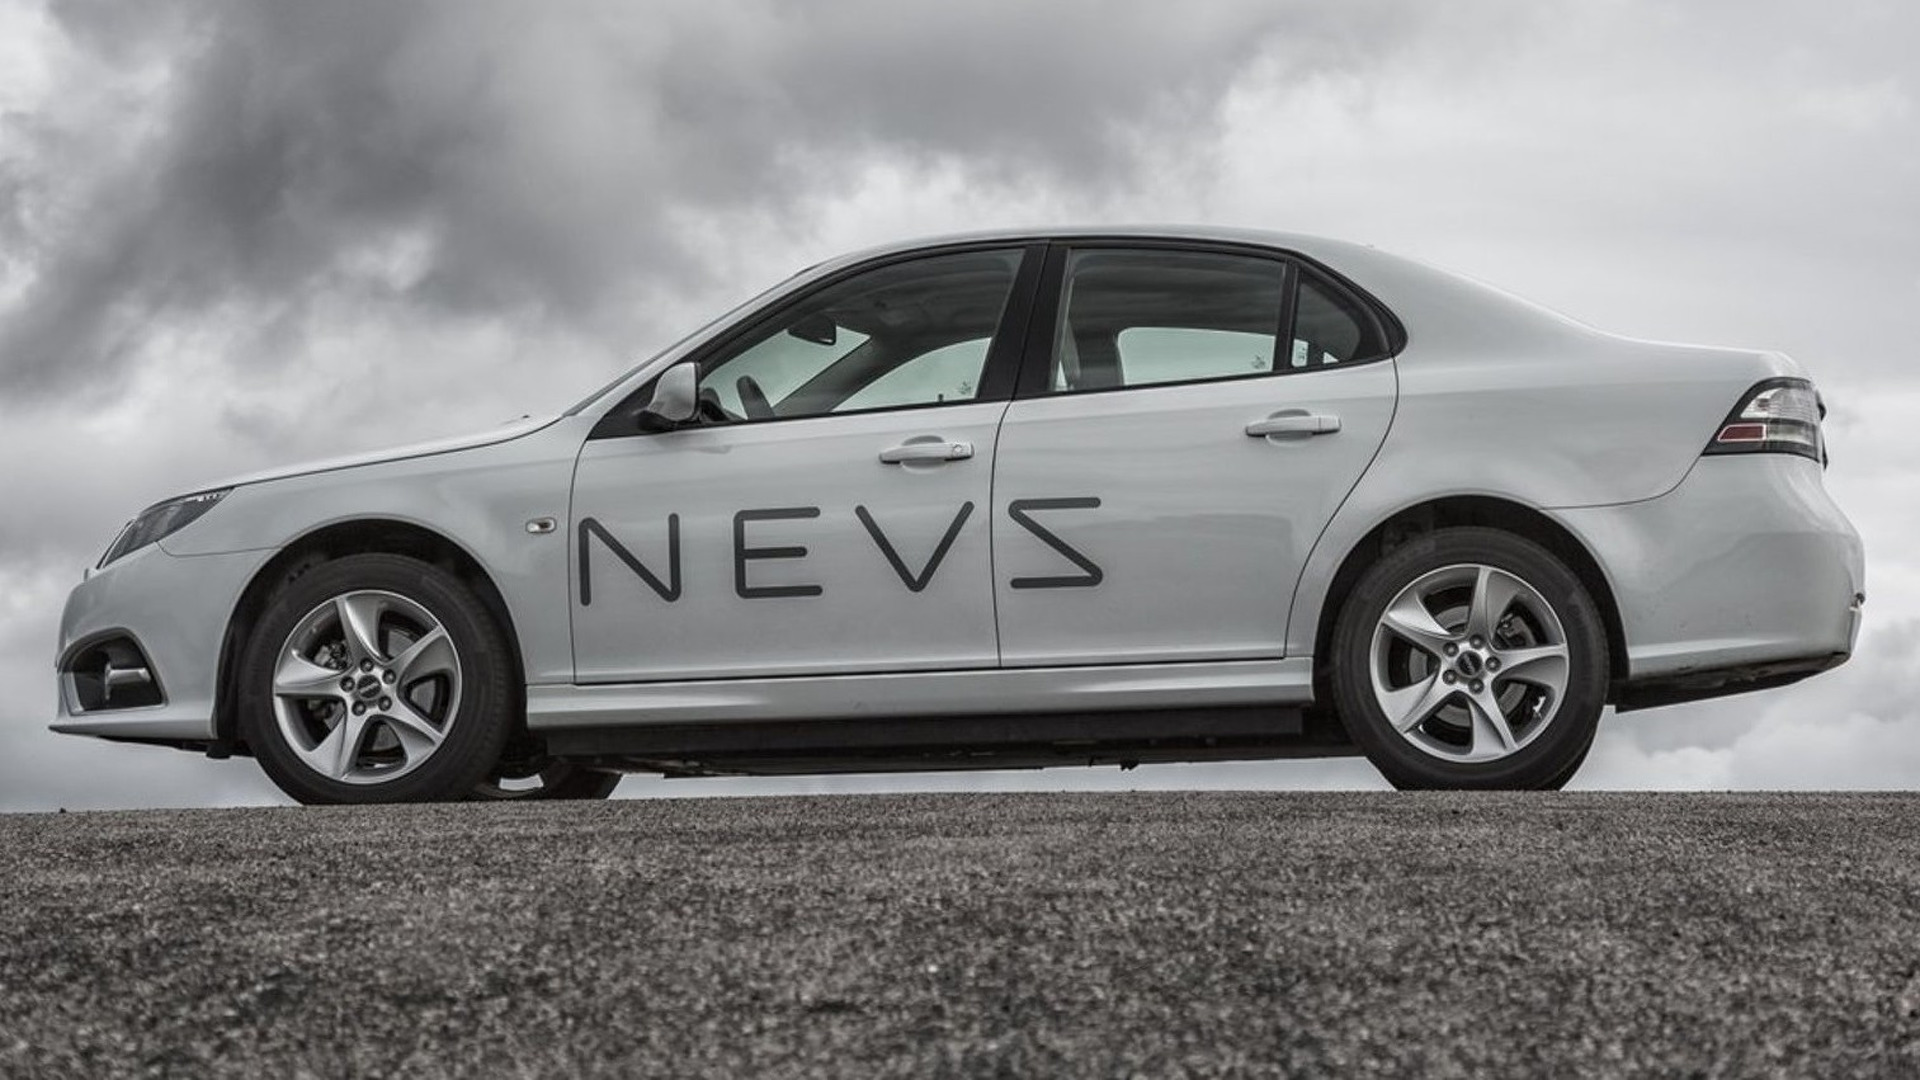 Saab 9 3 Not Dead Yet As Nevs Gets China Approval To Build Evs